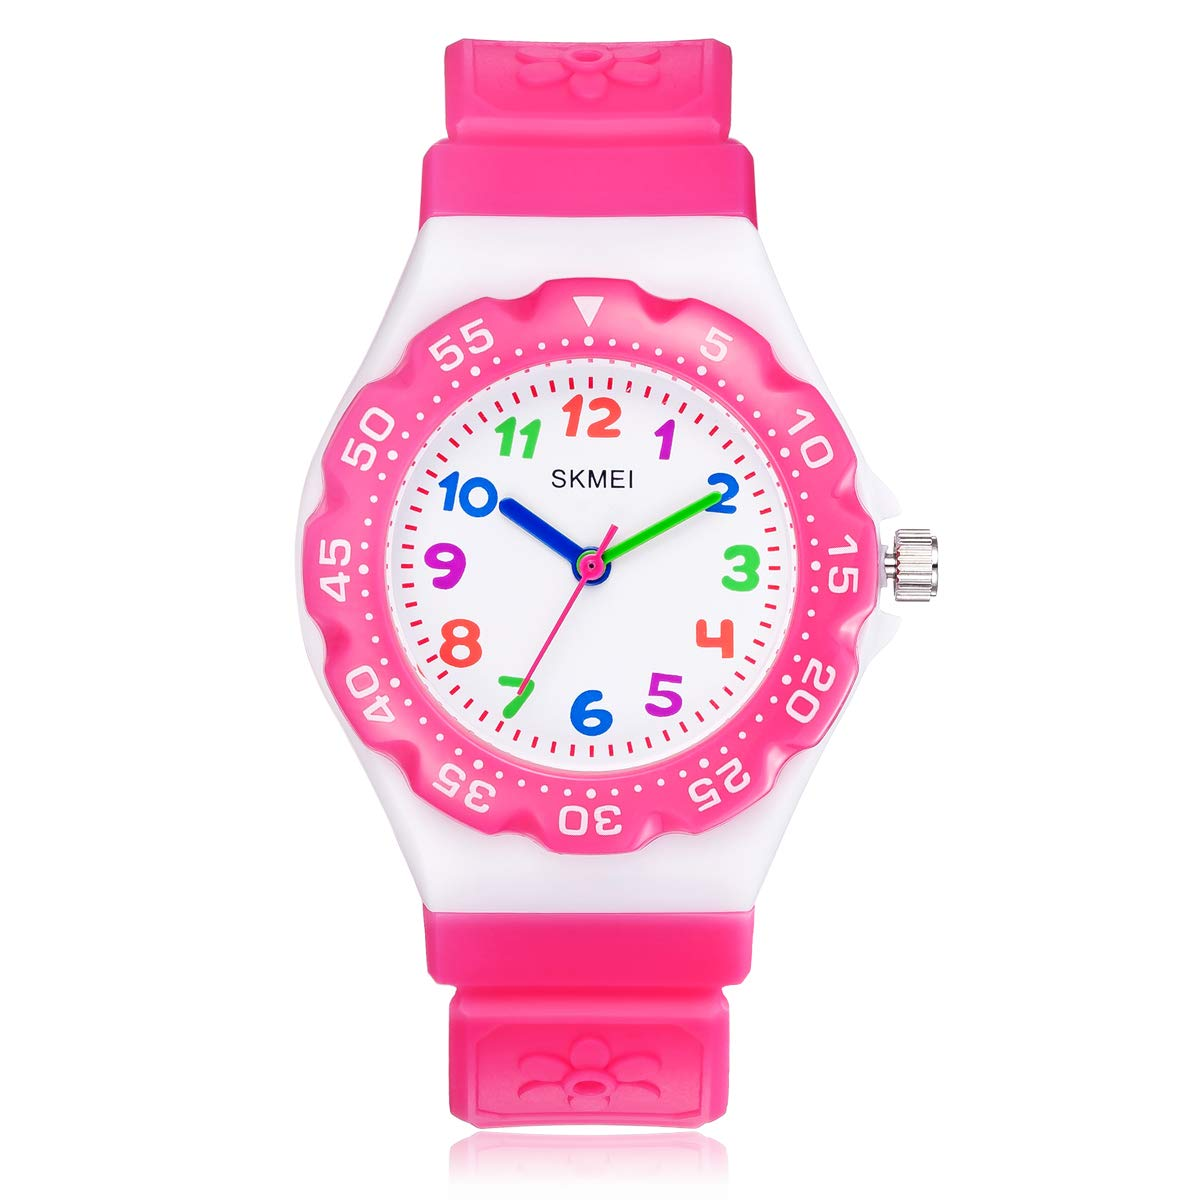 CakCity Kids Watches for Boys Girls Waterproof Analog Quartz Wrist Watch Children Watches by CakCity